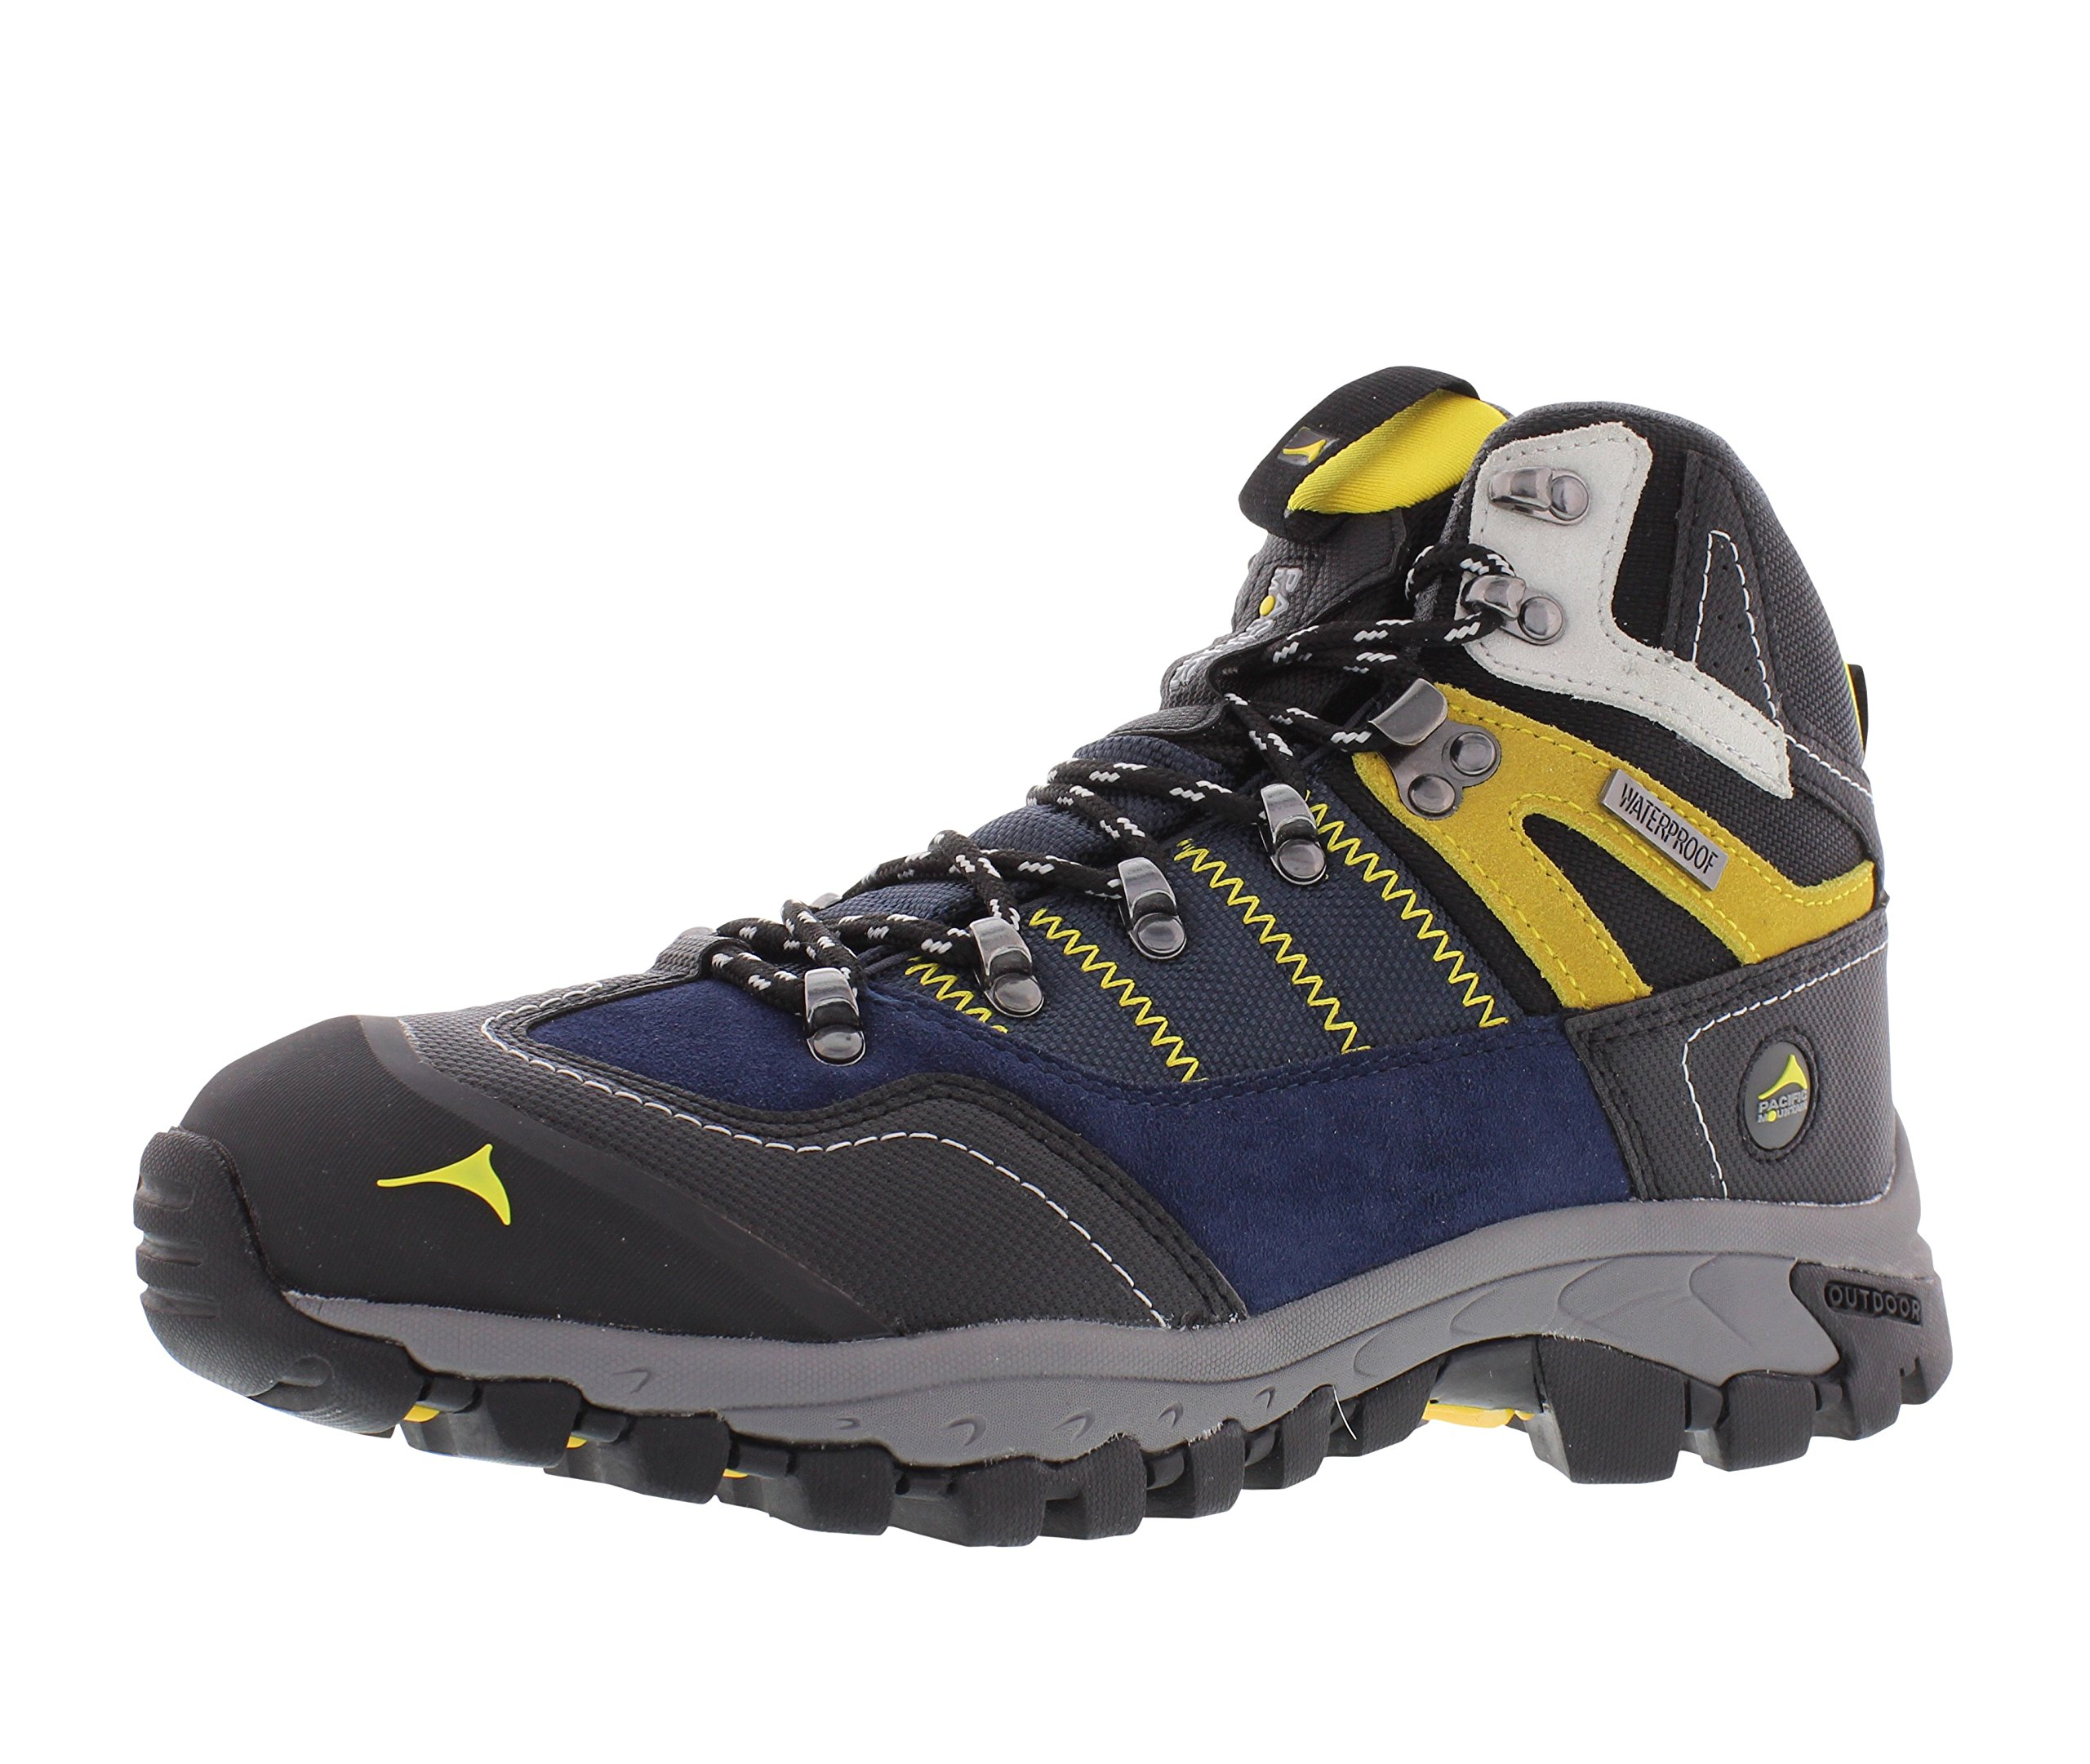 Pacific Mountain Ascend Men's Waterproof Hiking Backpacking Mid-Cut Navy/Black/Yellow Boots Size 11.5